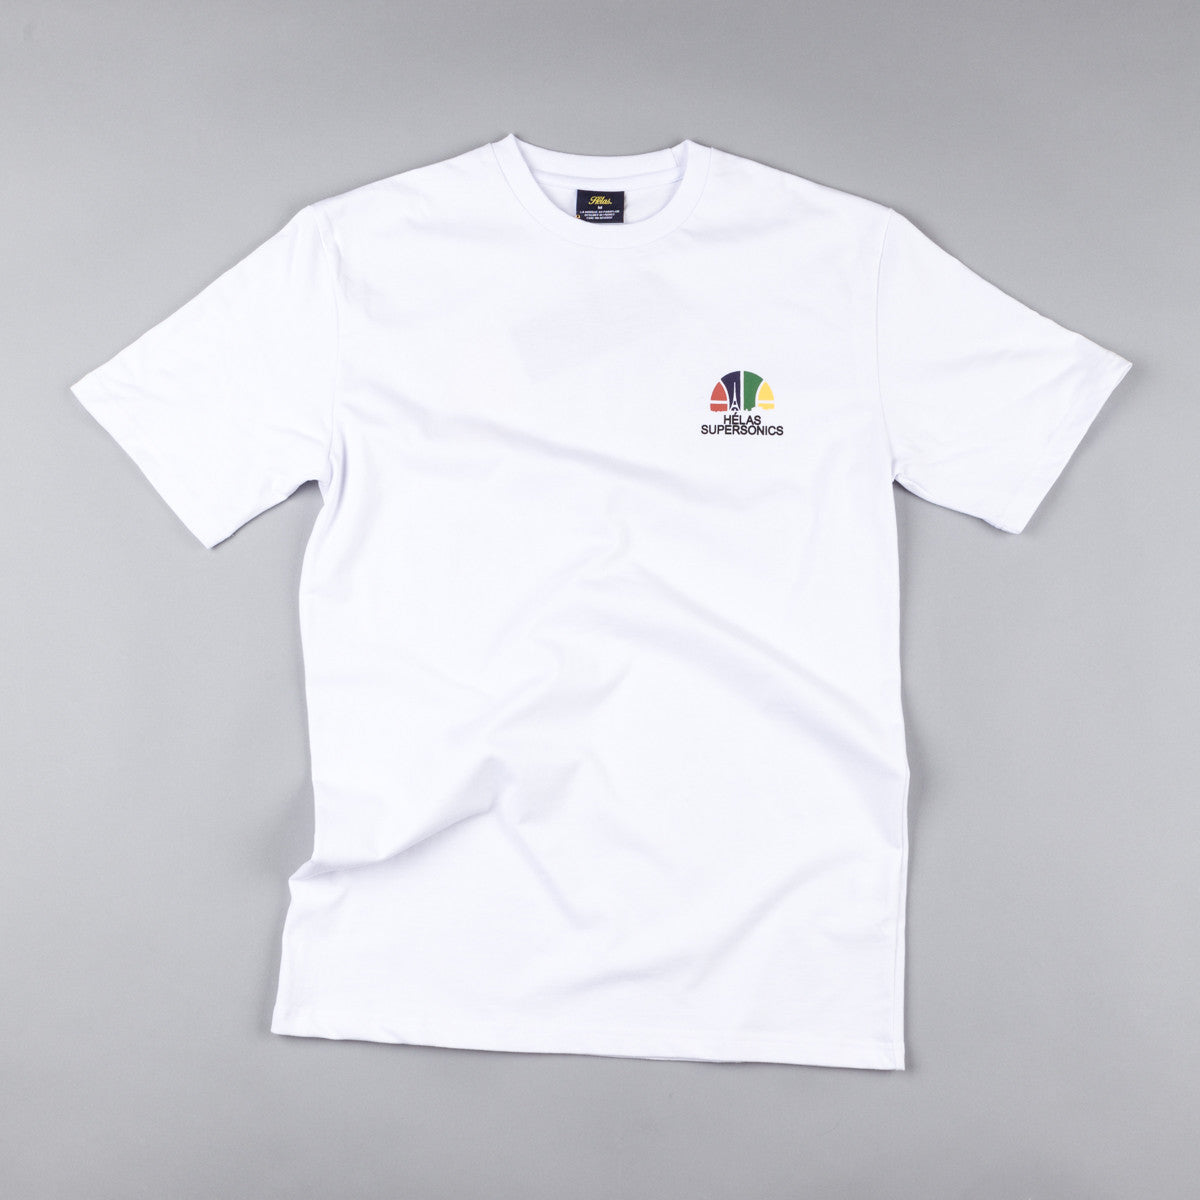 Helas Supersonics T-Shirt - White